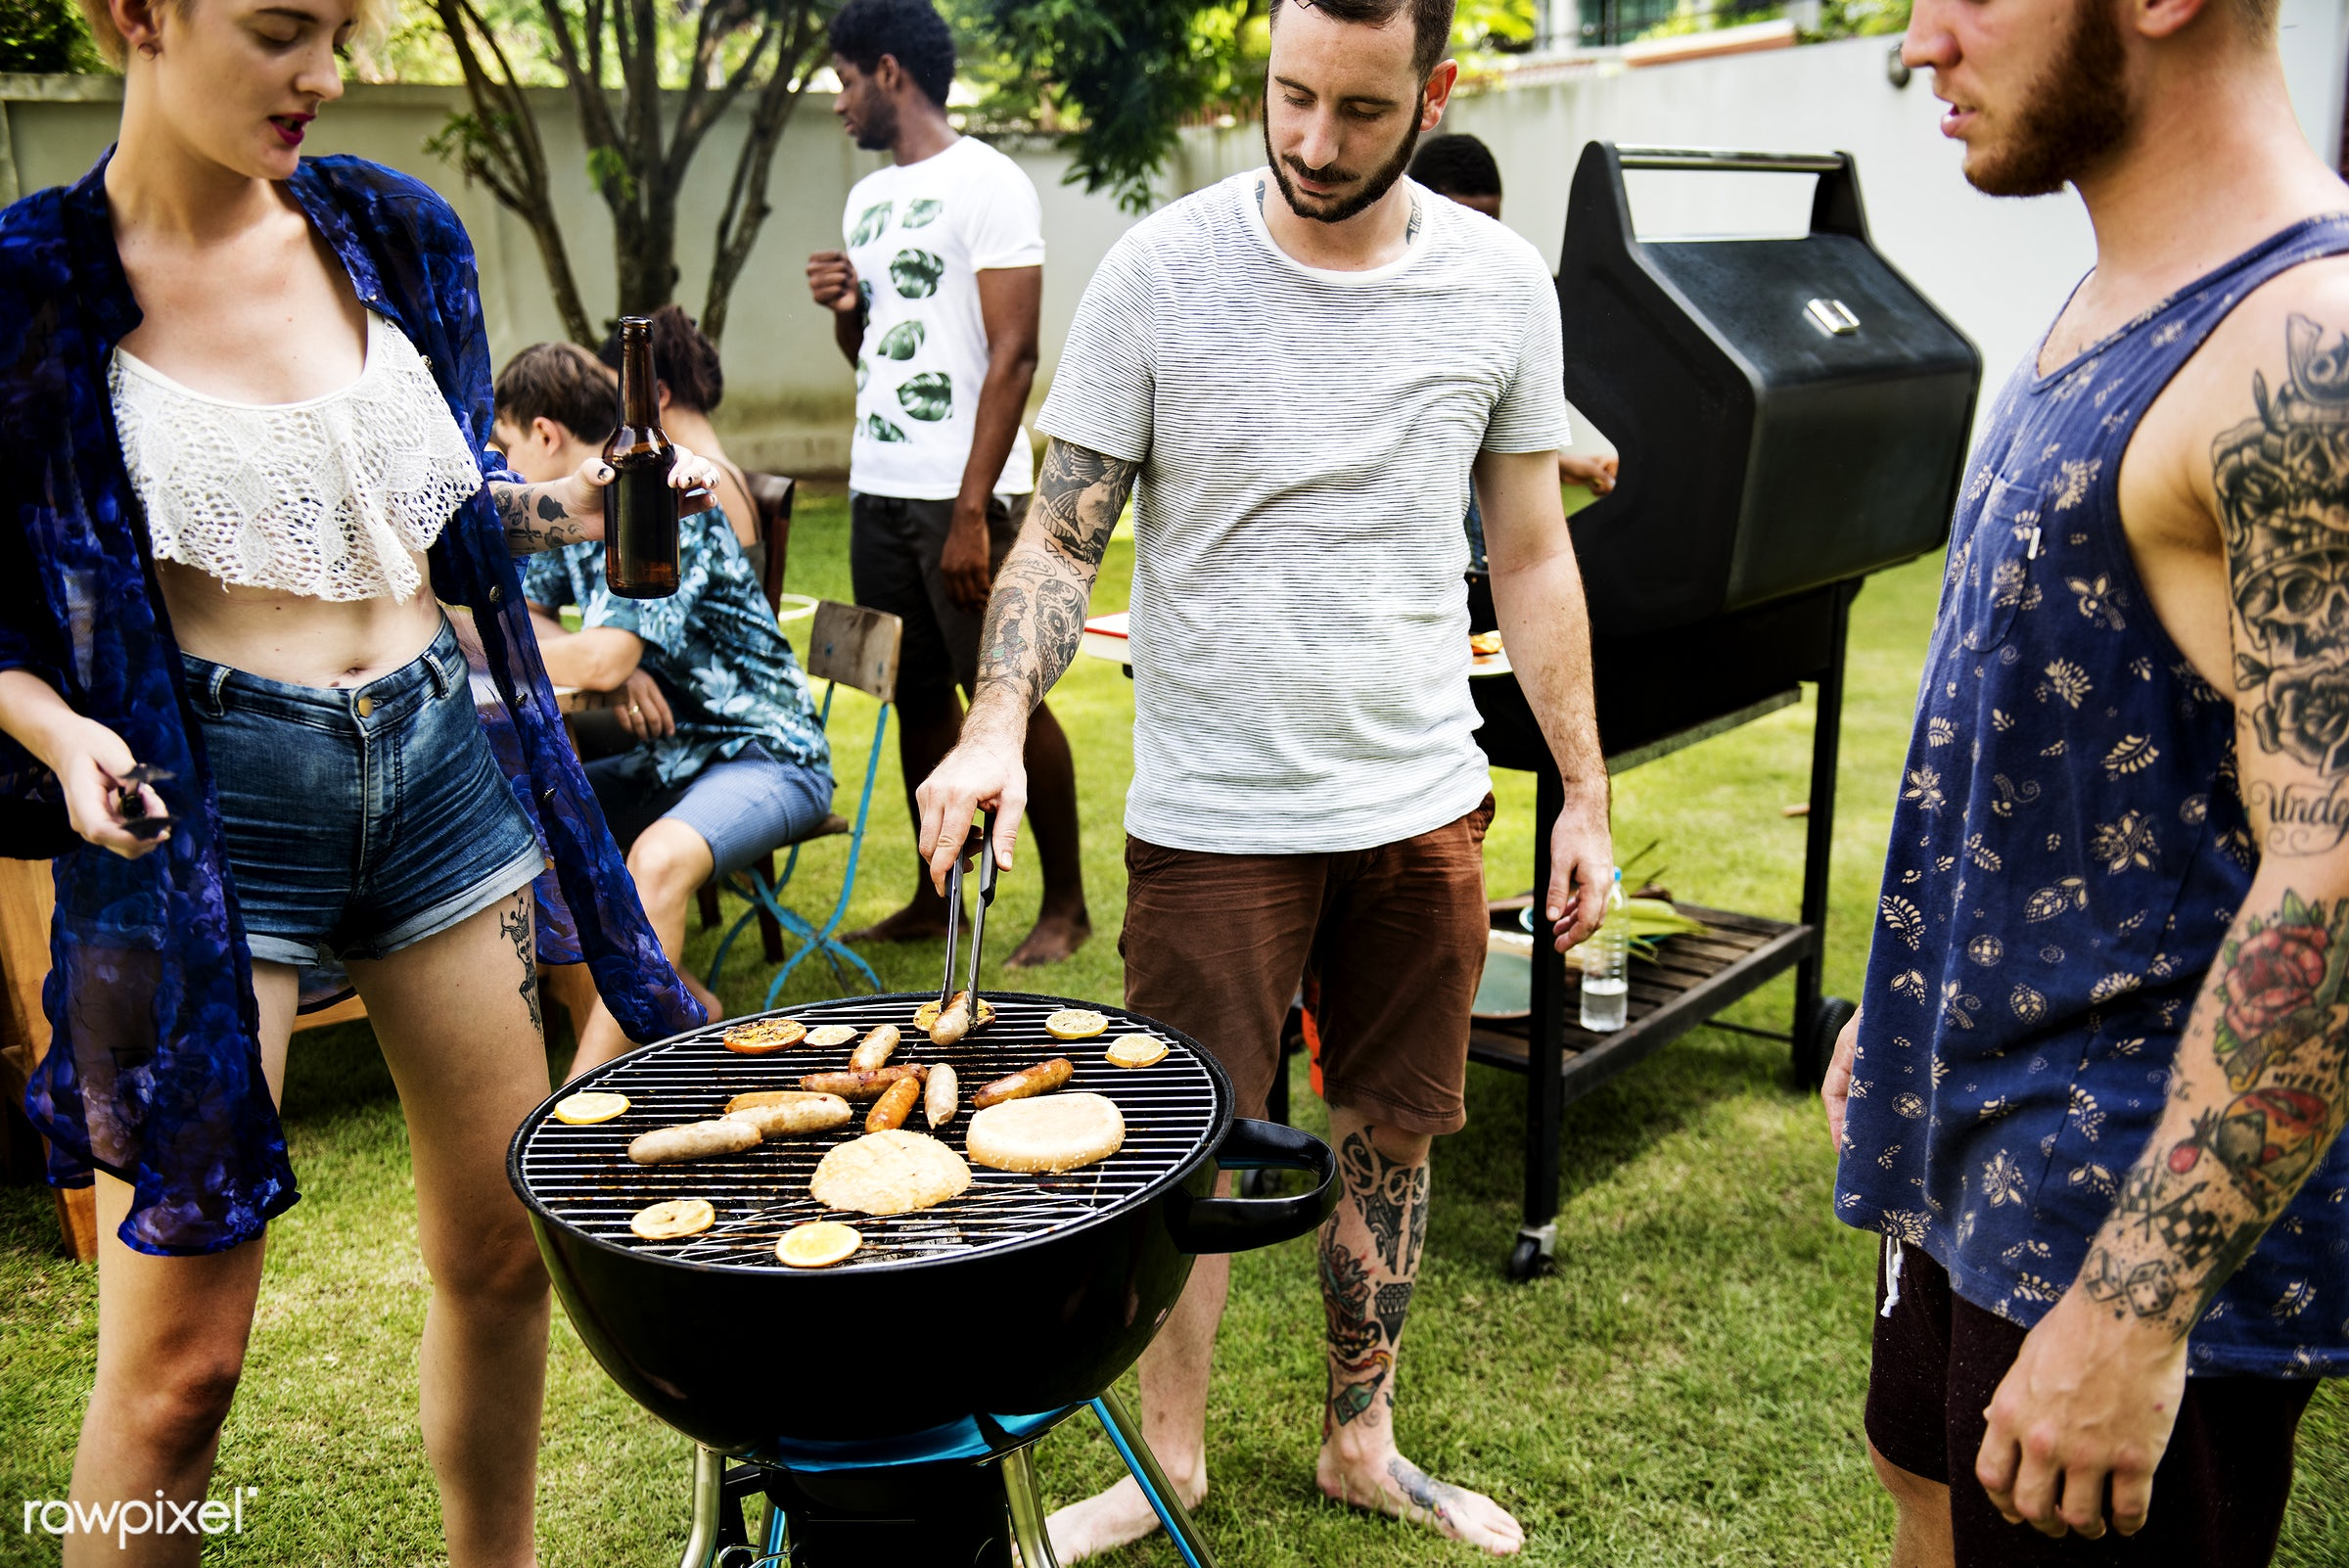 bbq, activity, barbecue, charcoals, cooking, diverse, food, friends, fun, grass, grill, group, hands, holiday, homemade,...